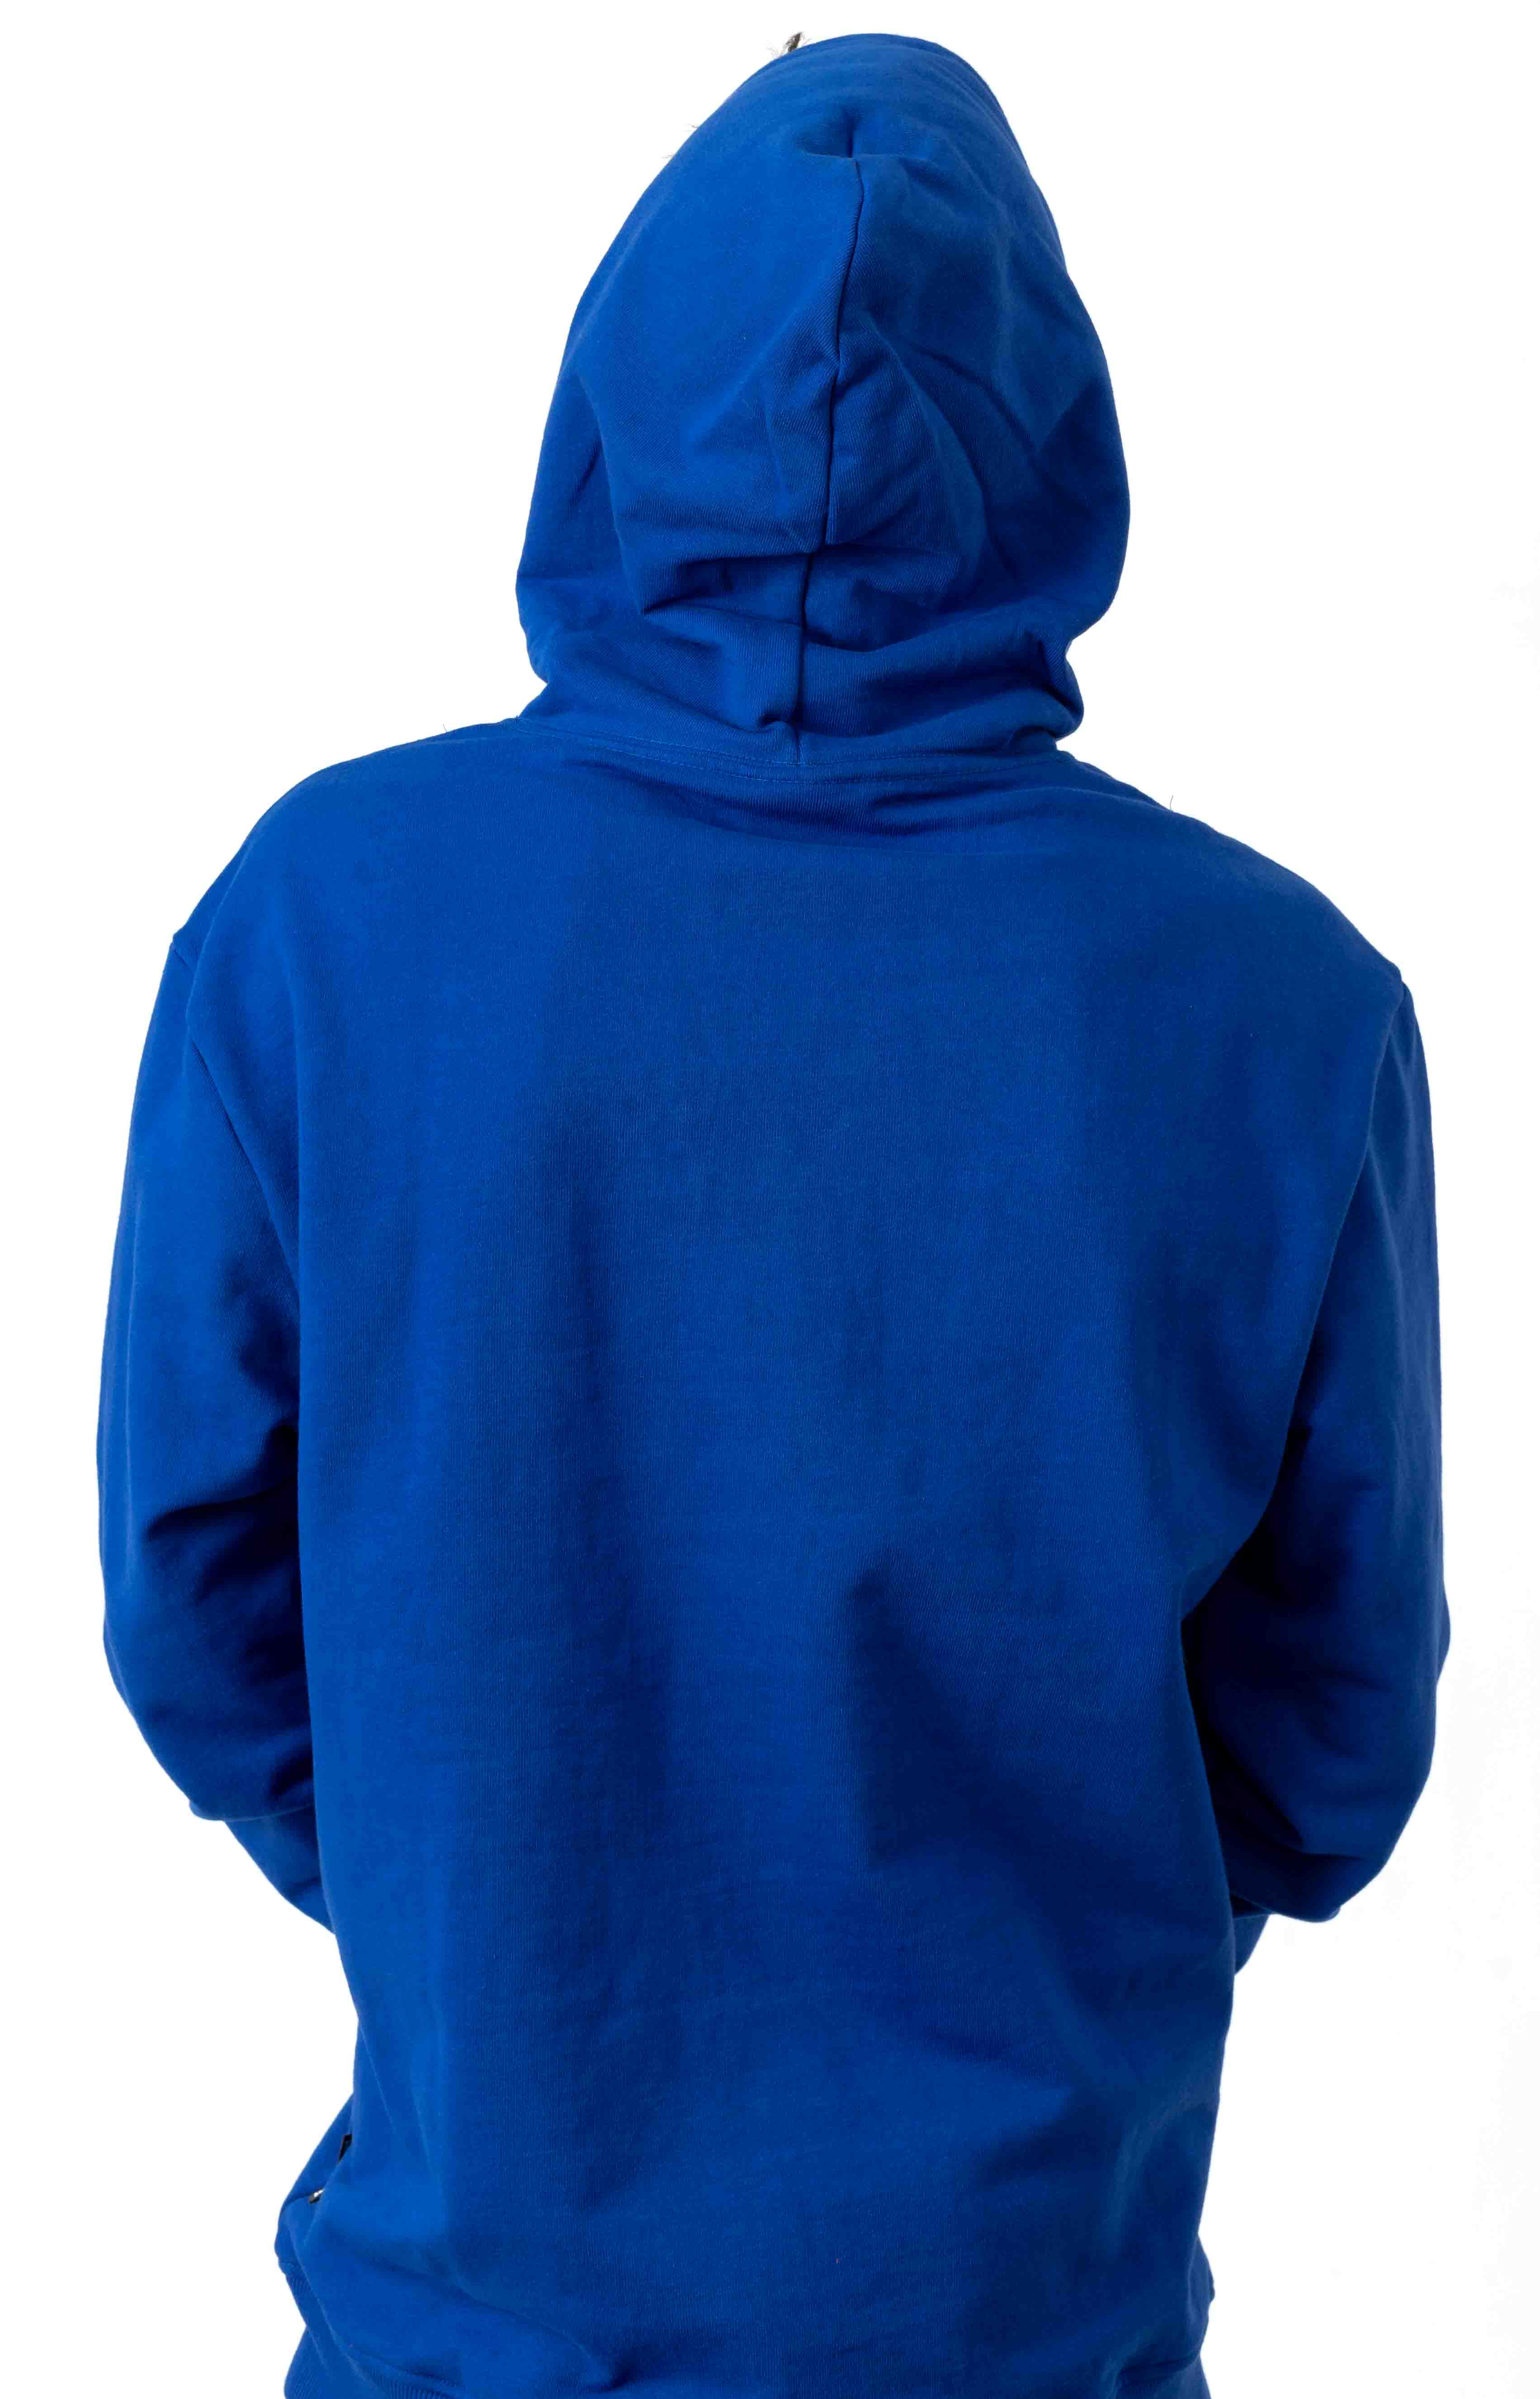 Flag Pullover Hoodie - Surf The Web 3